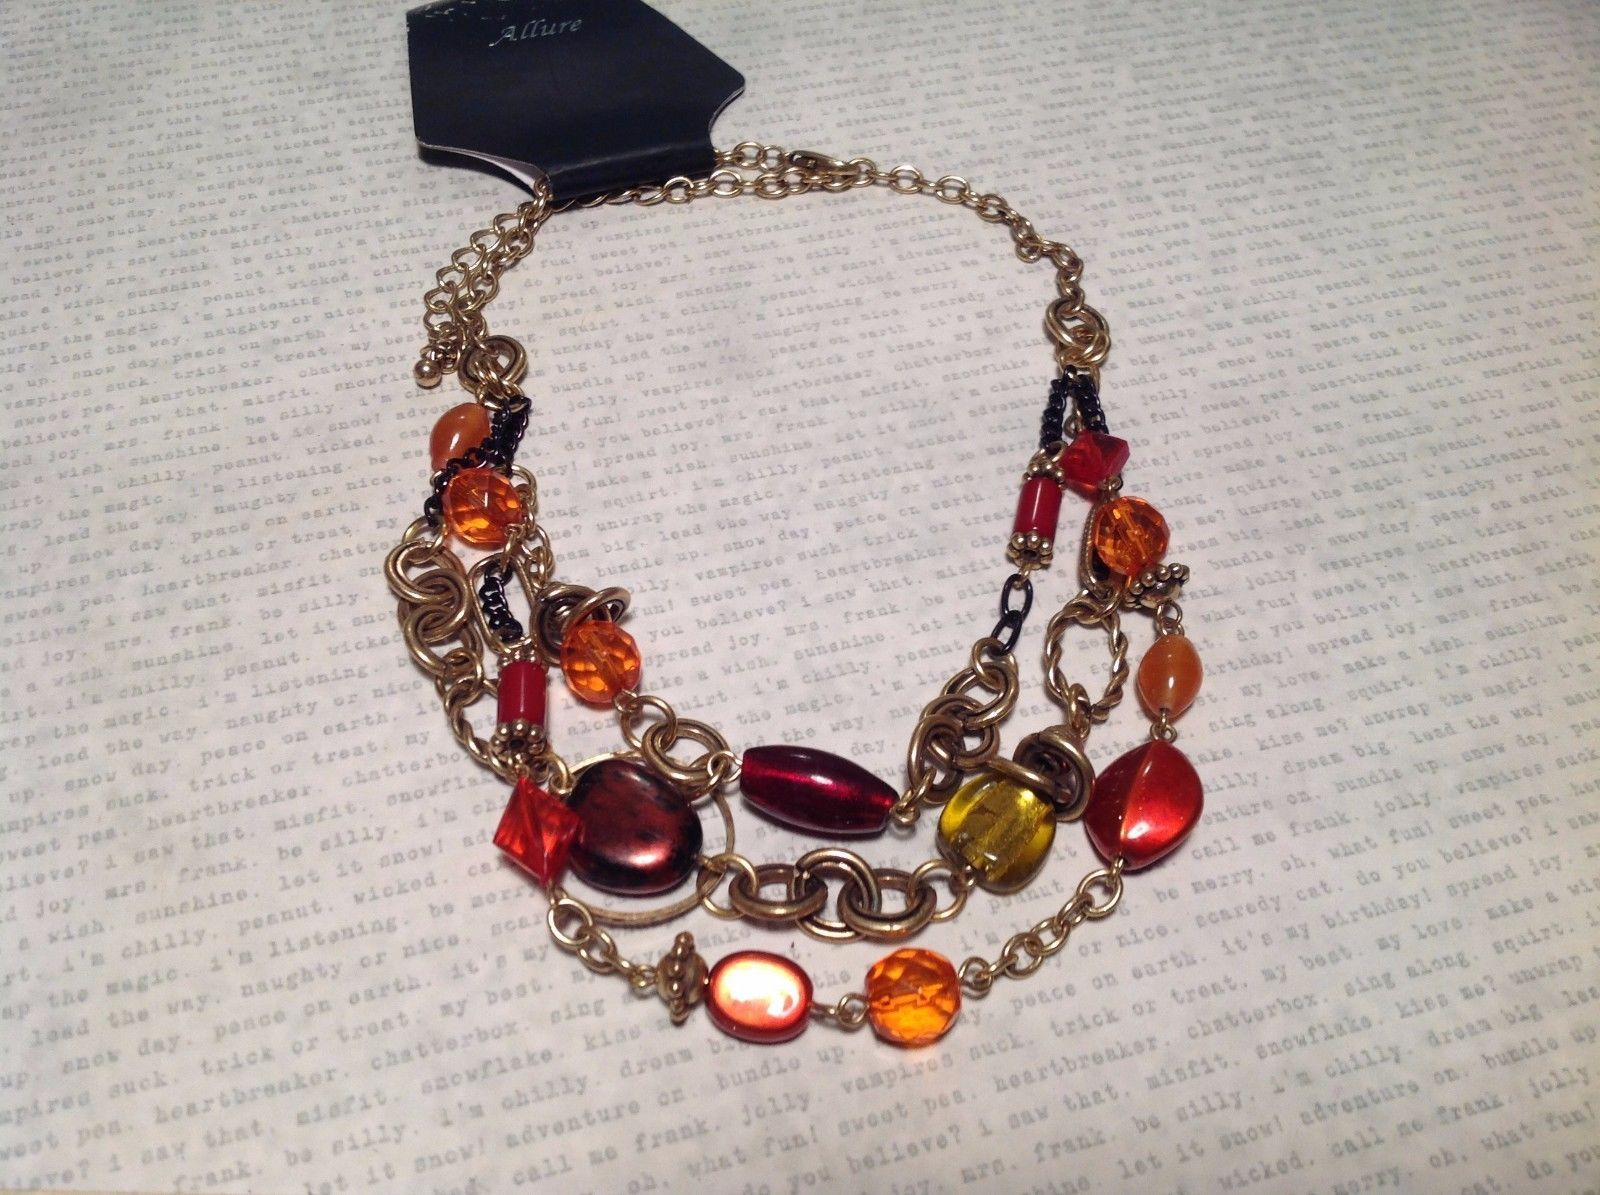 Allure Gold Tone Multistrand Necklace w Assorted Beads NEW